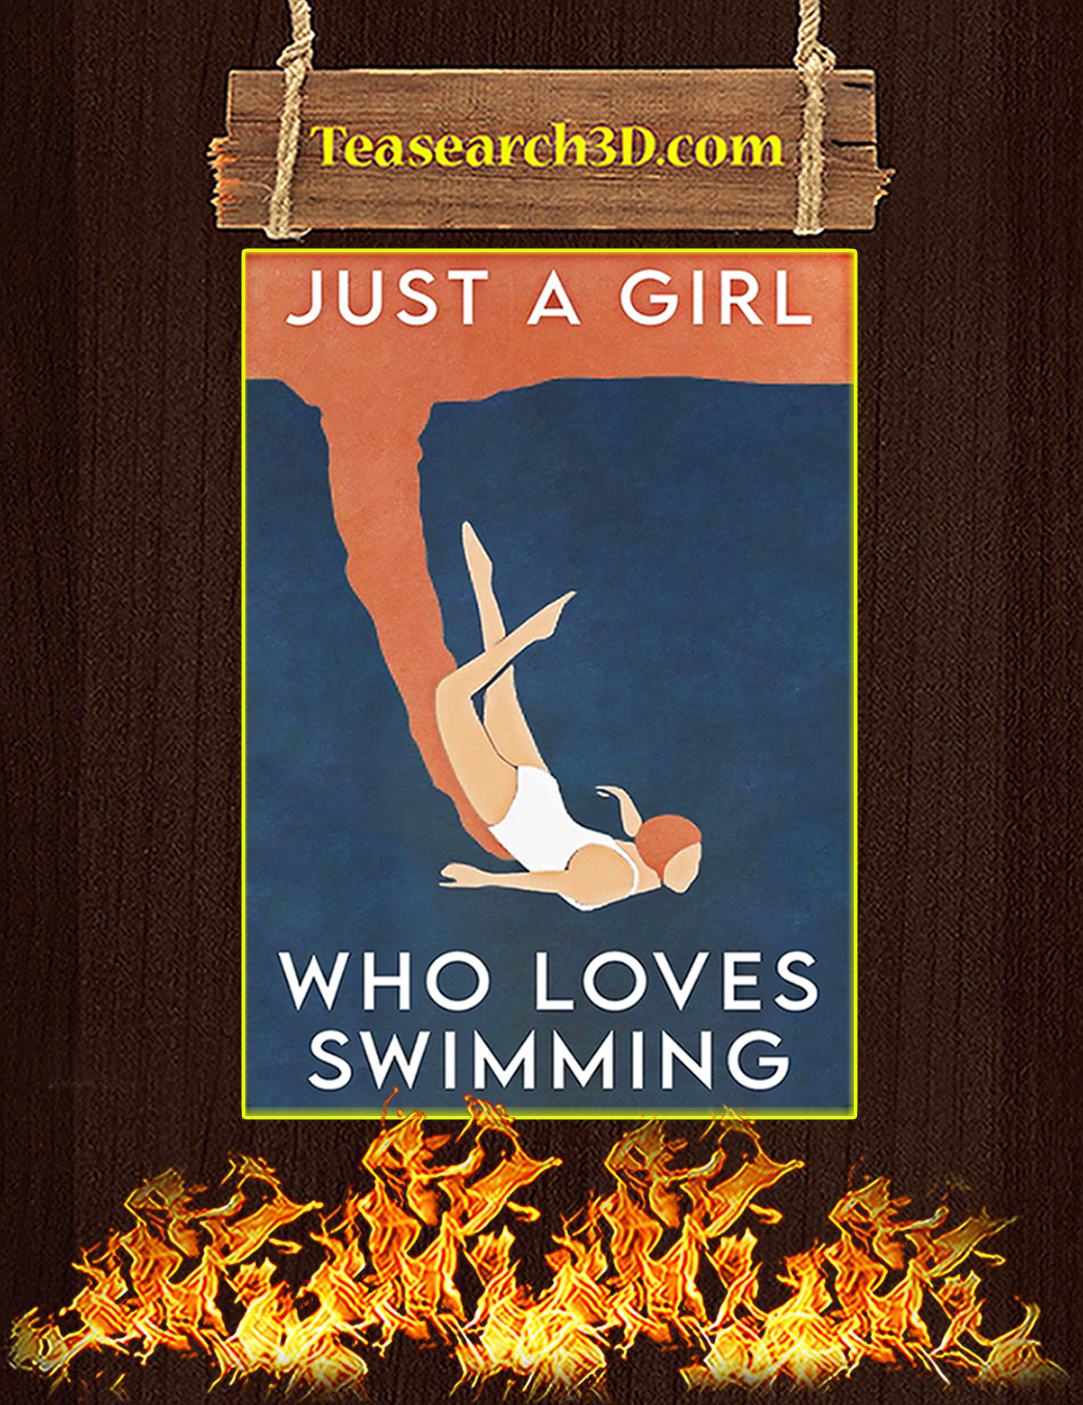 Just a girl who loves swimming poster A2